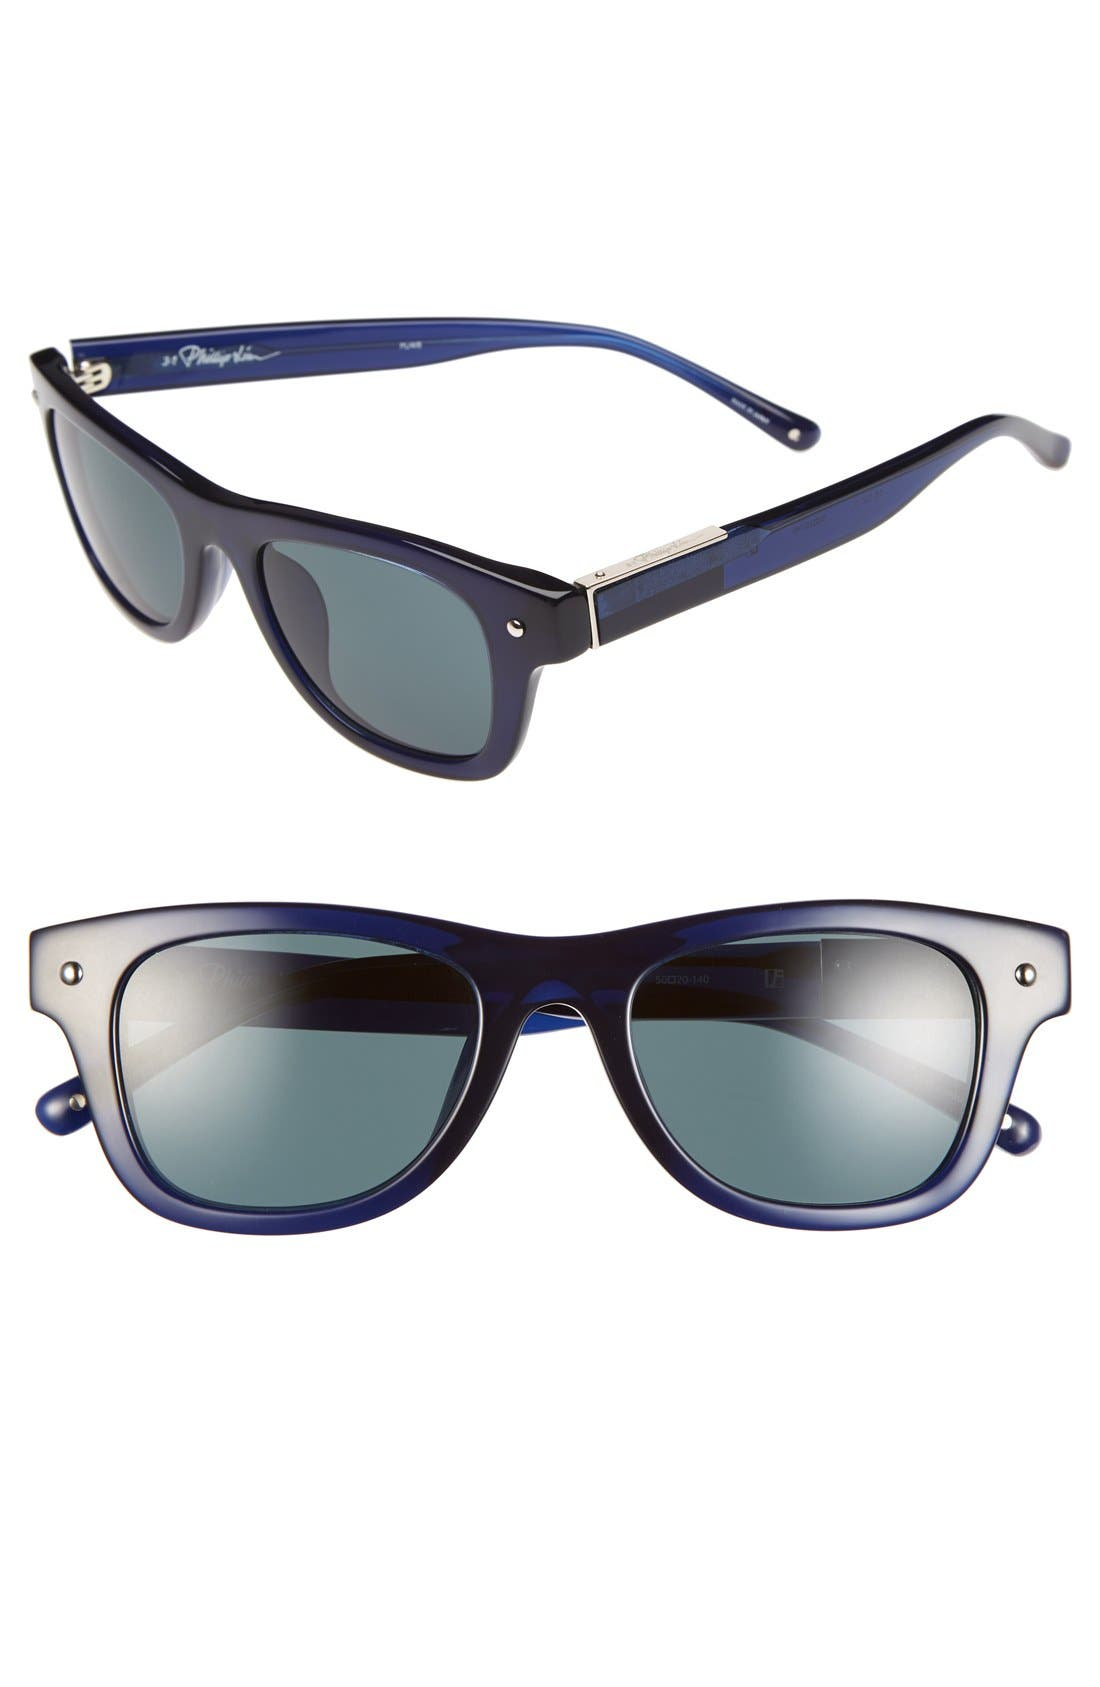 Main Image - 3.1 Phillip Lim 50mm Sunglasses